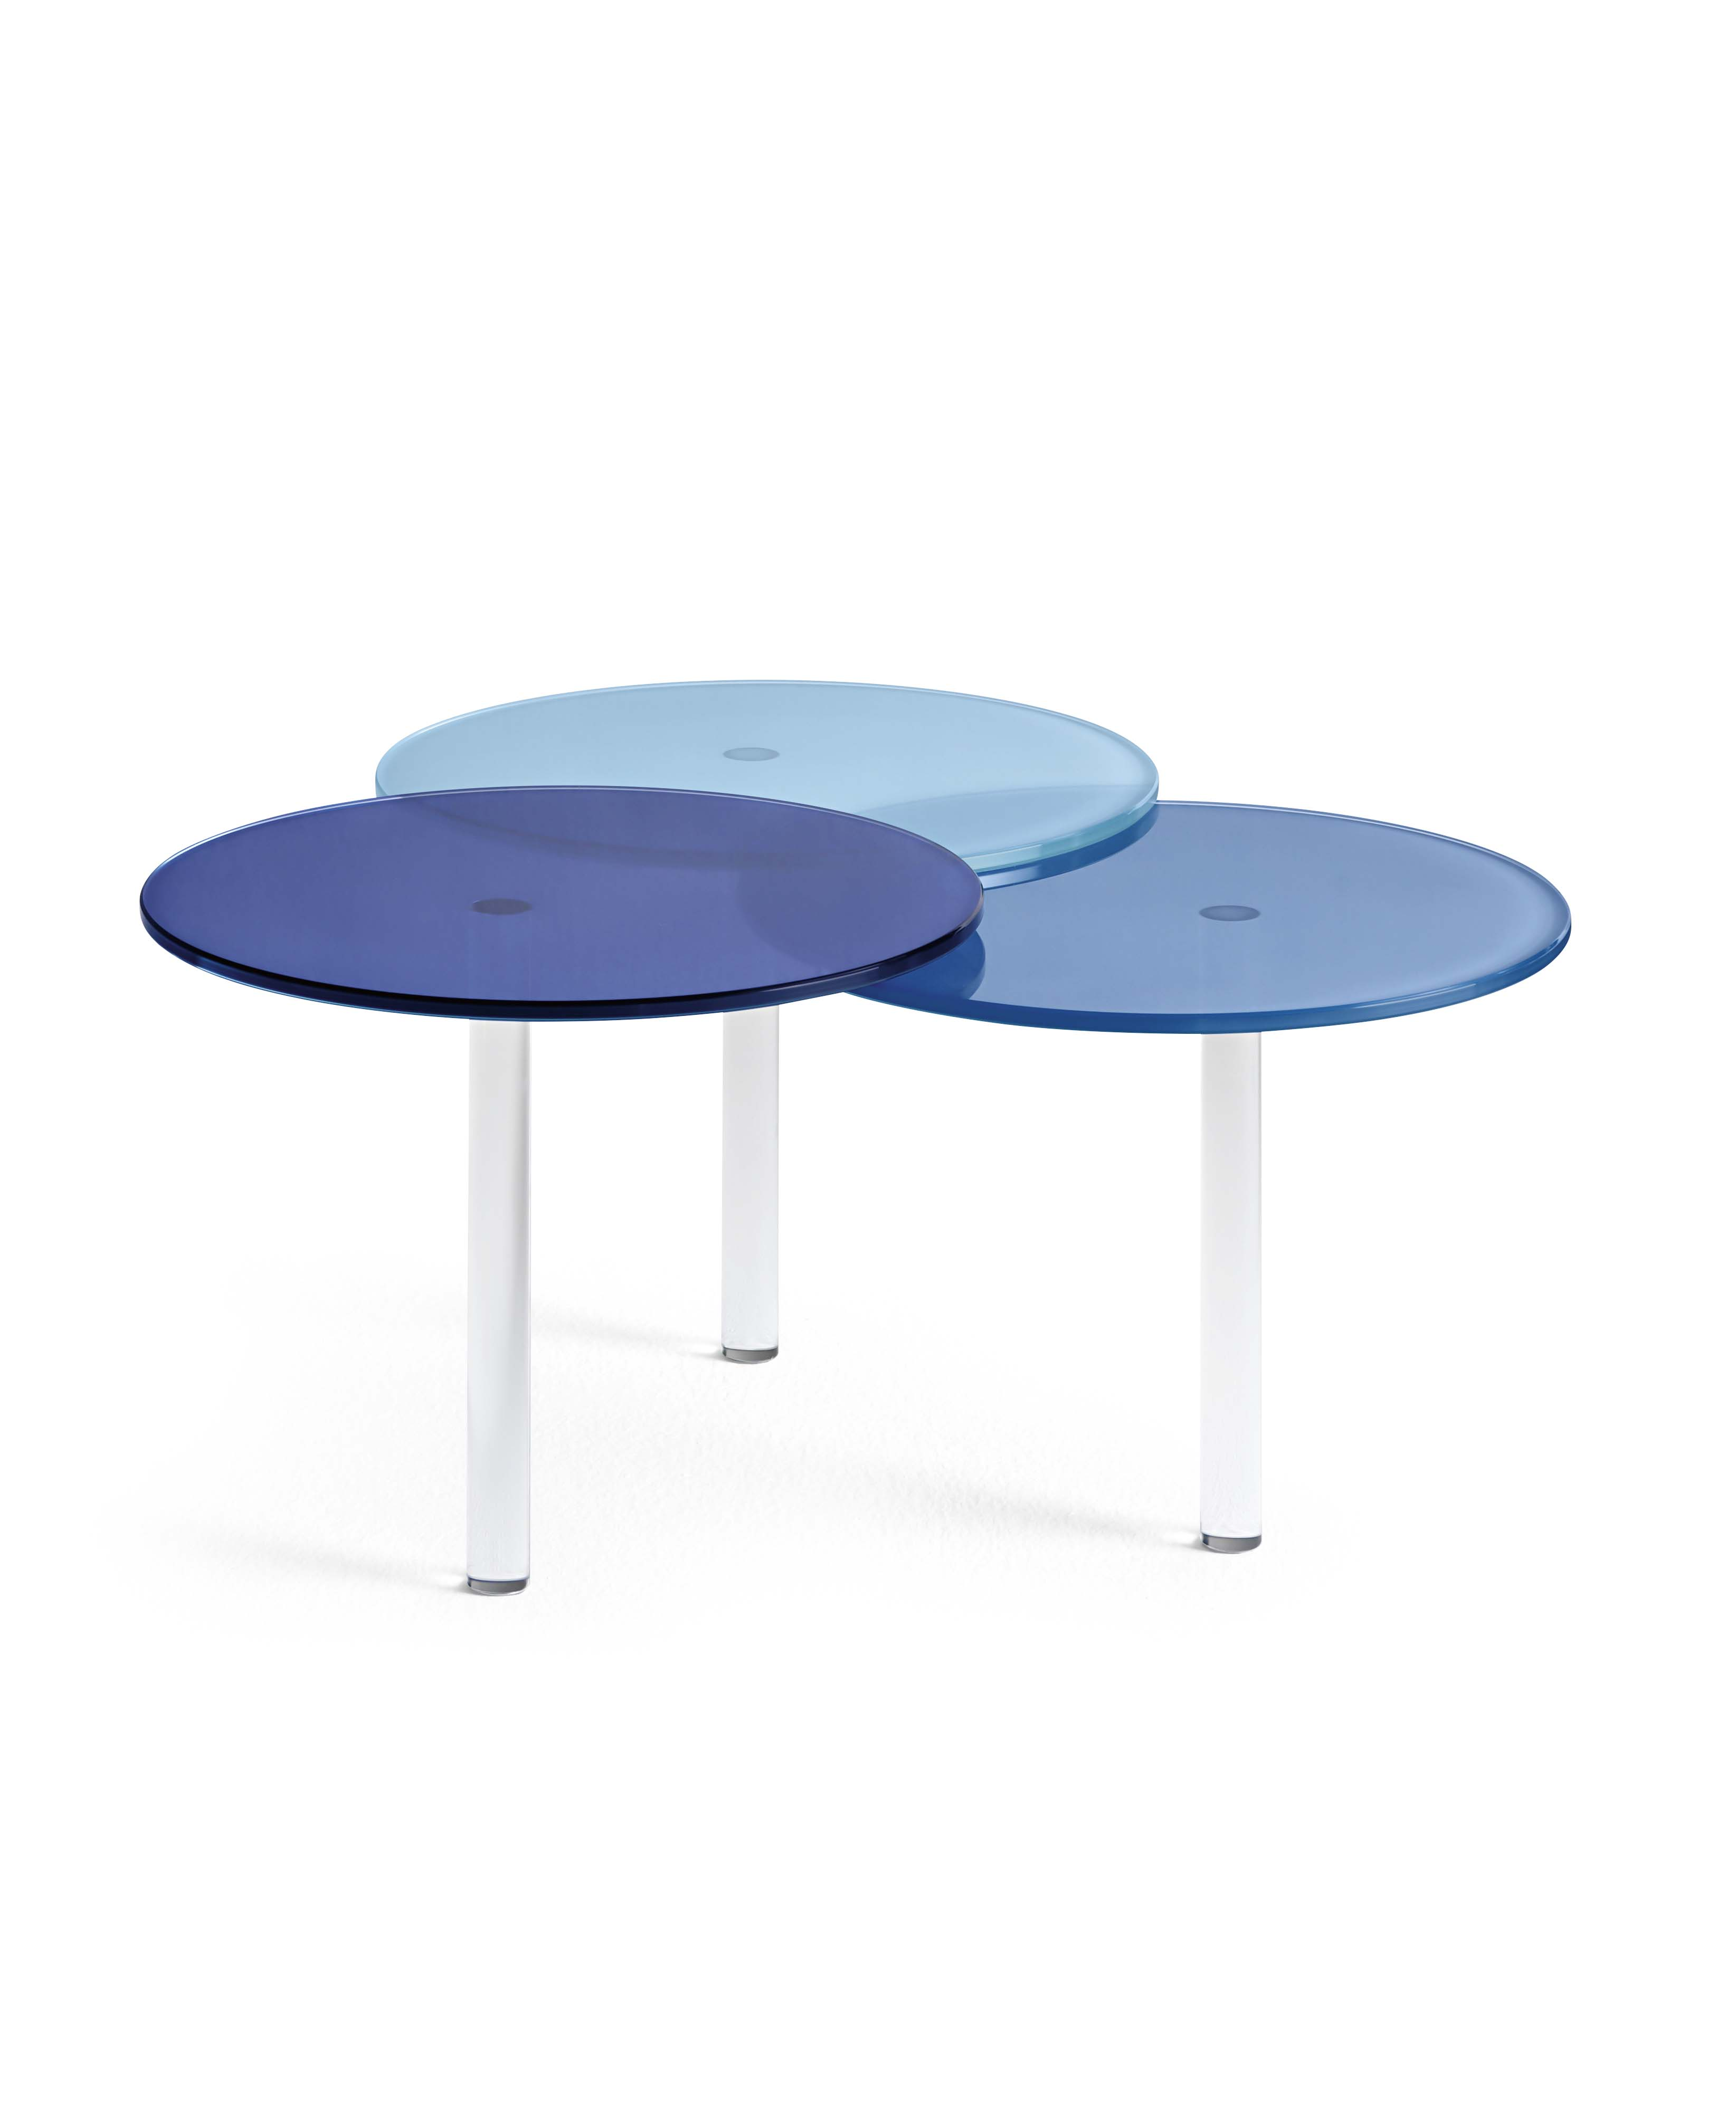 Glass Coffee Table / Bedside Table LENSES By Tonelli Design Design Paolo  Grasselli